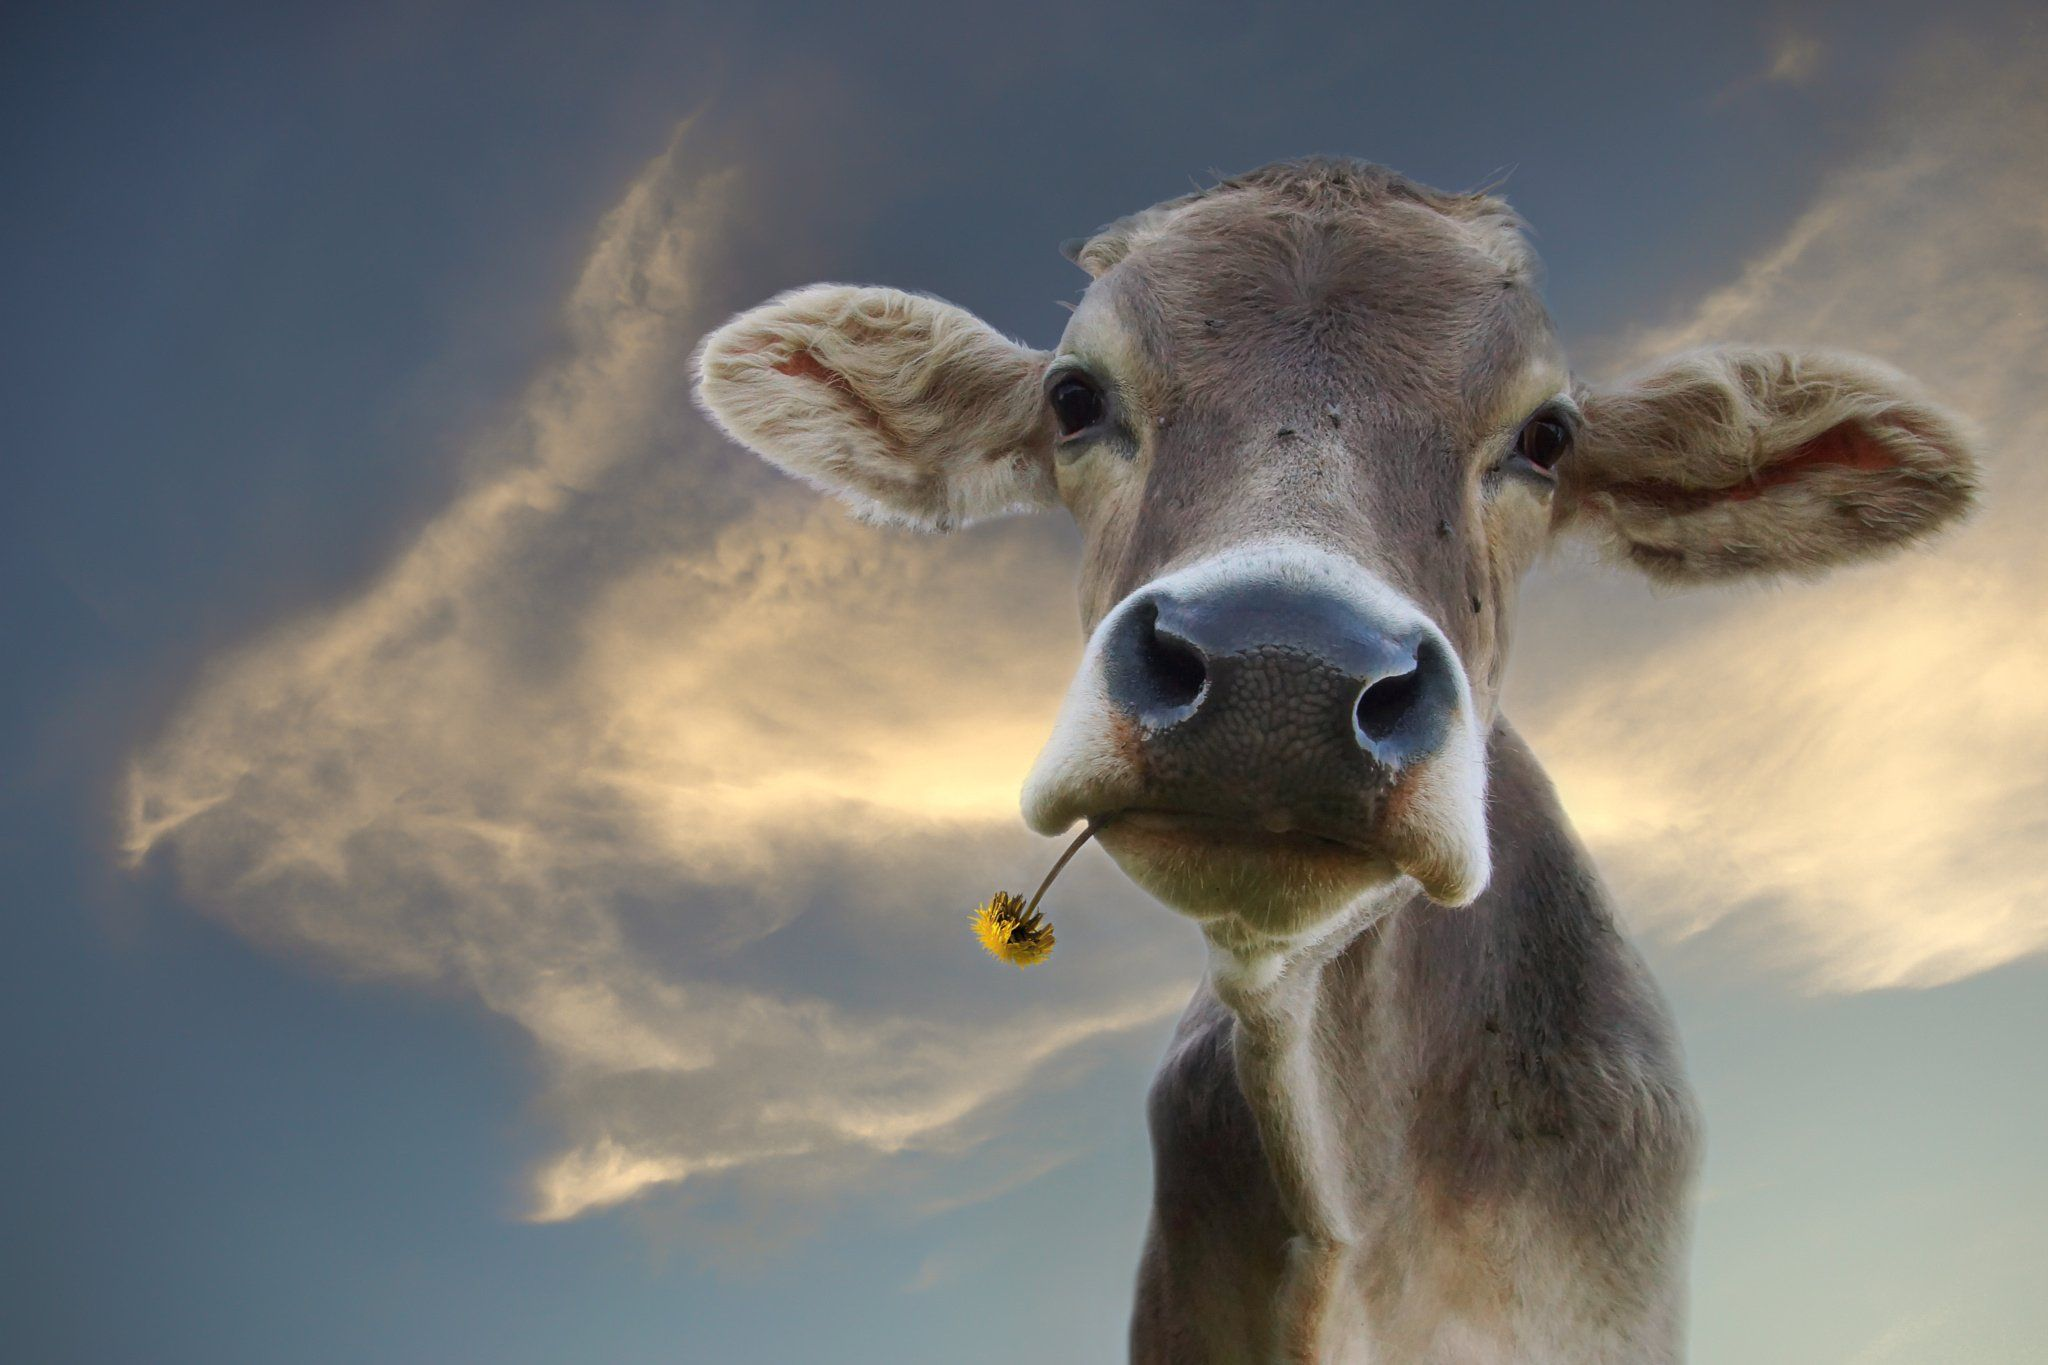 Cows Wallpapers Downloadeer Simply The Best Cows Funny Animals Cow Pictures